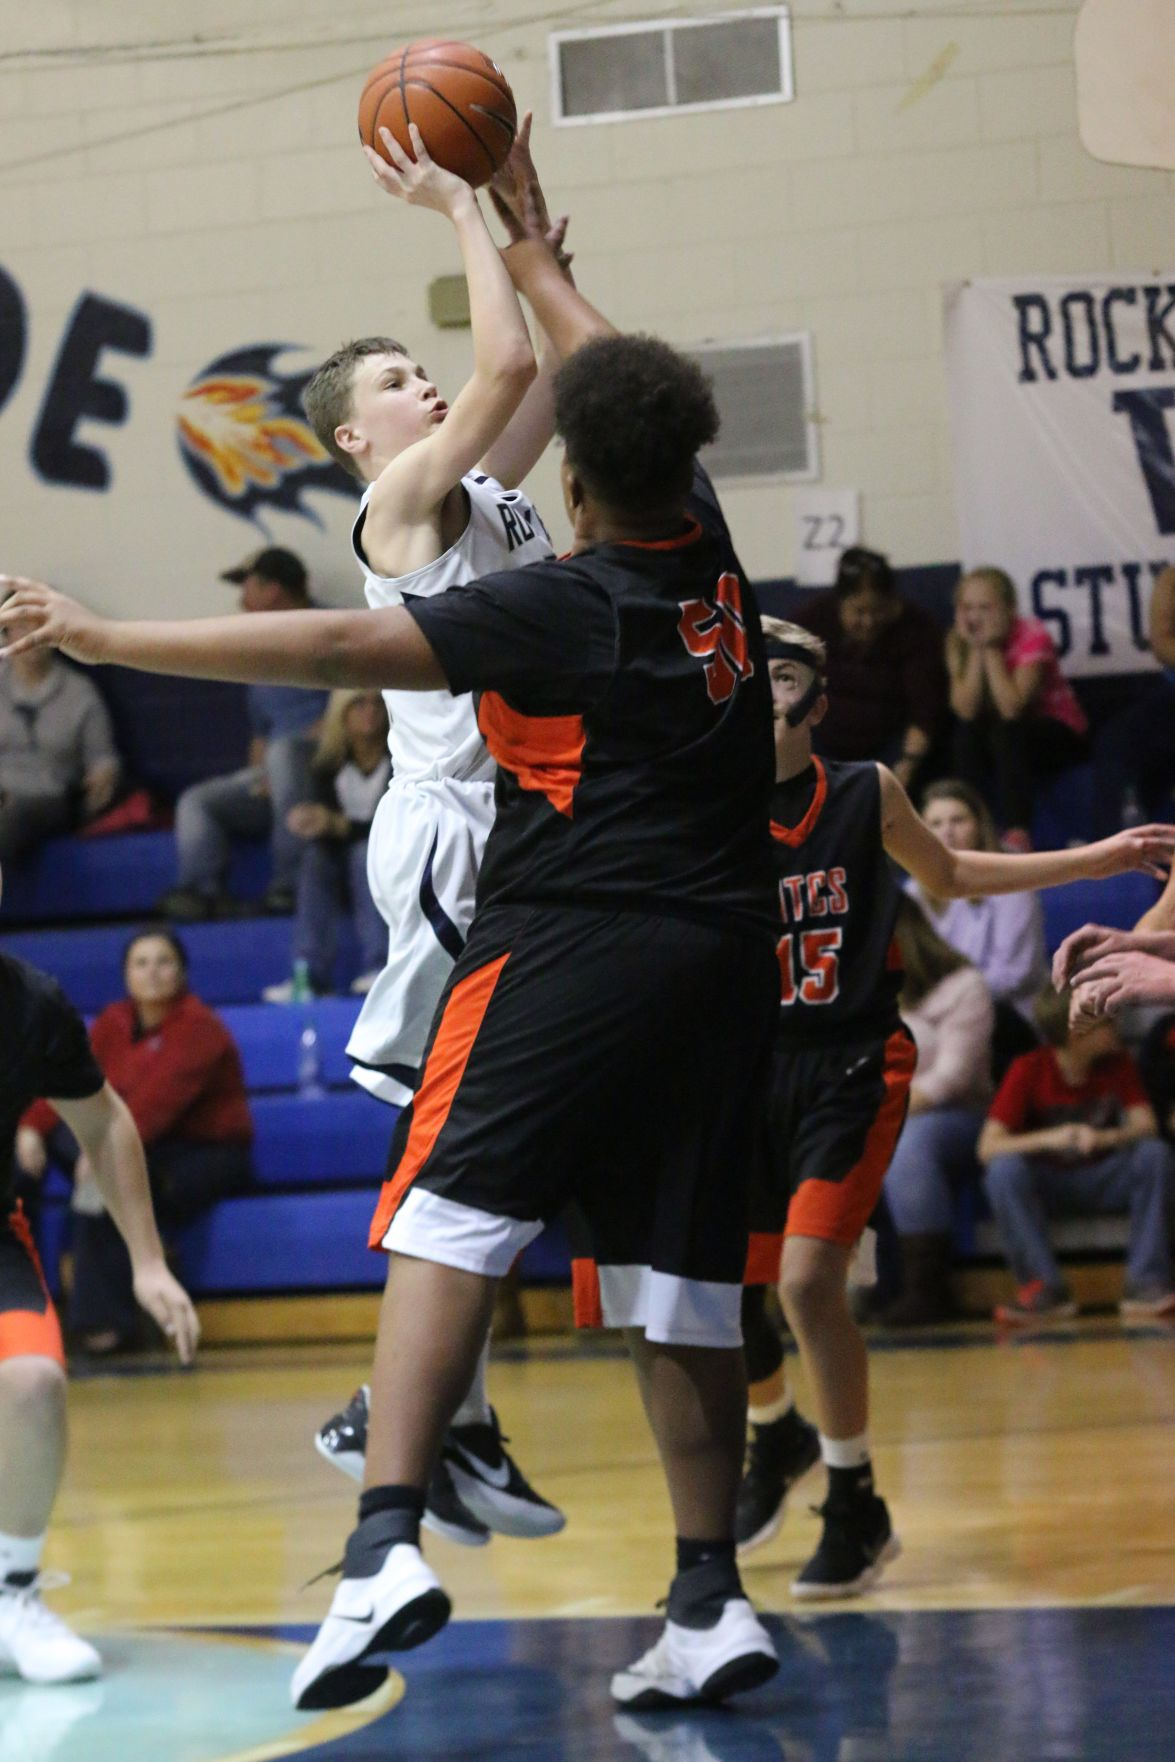 MIDDLE SCHOOL BASKETBALL: Lady Rockets dominate M.T.C.S.; WMS boys fall to Cougars